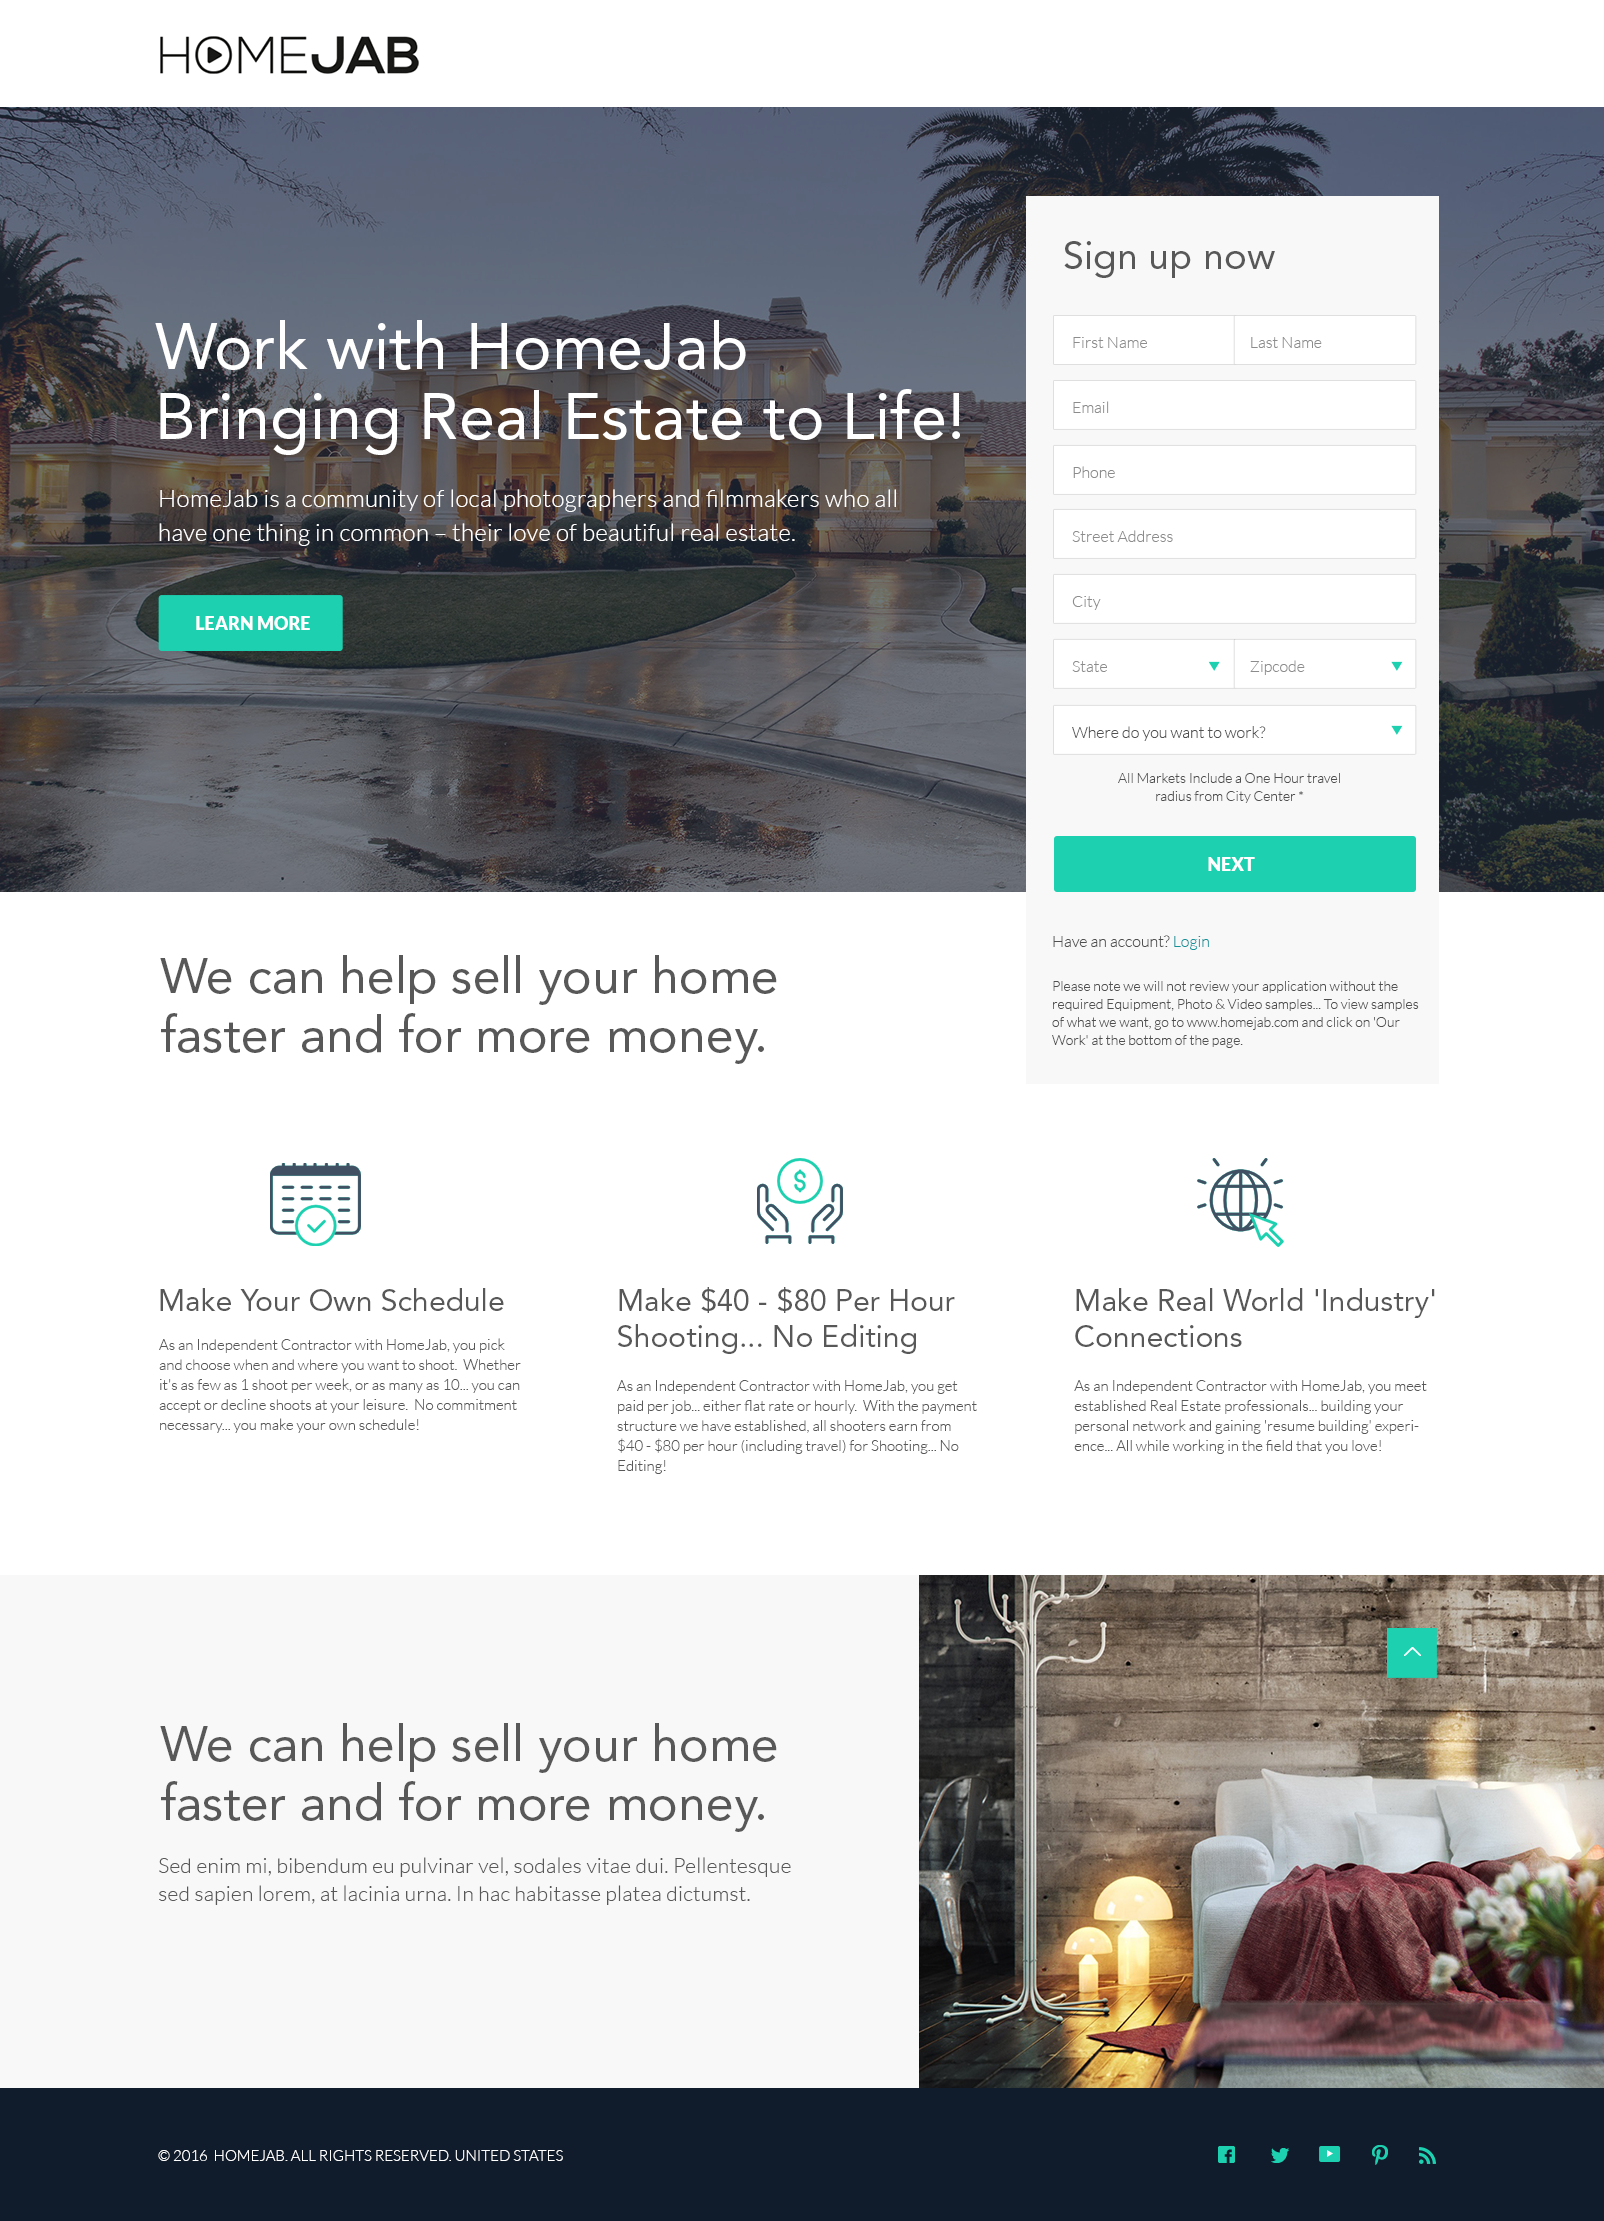 Web design for HomeJab